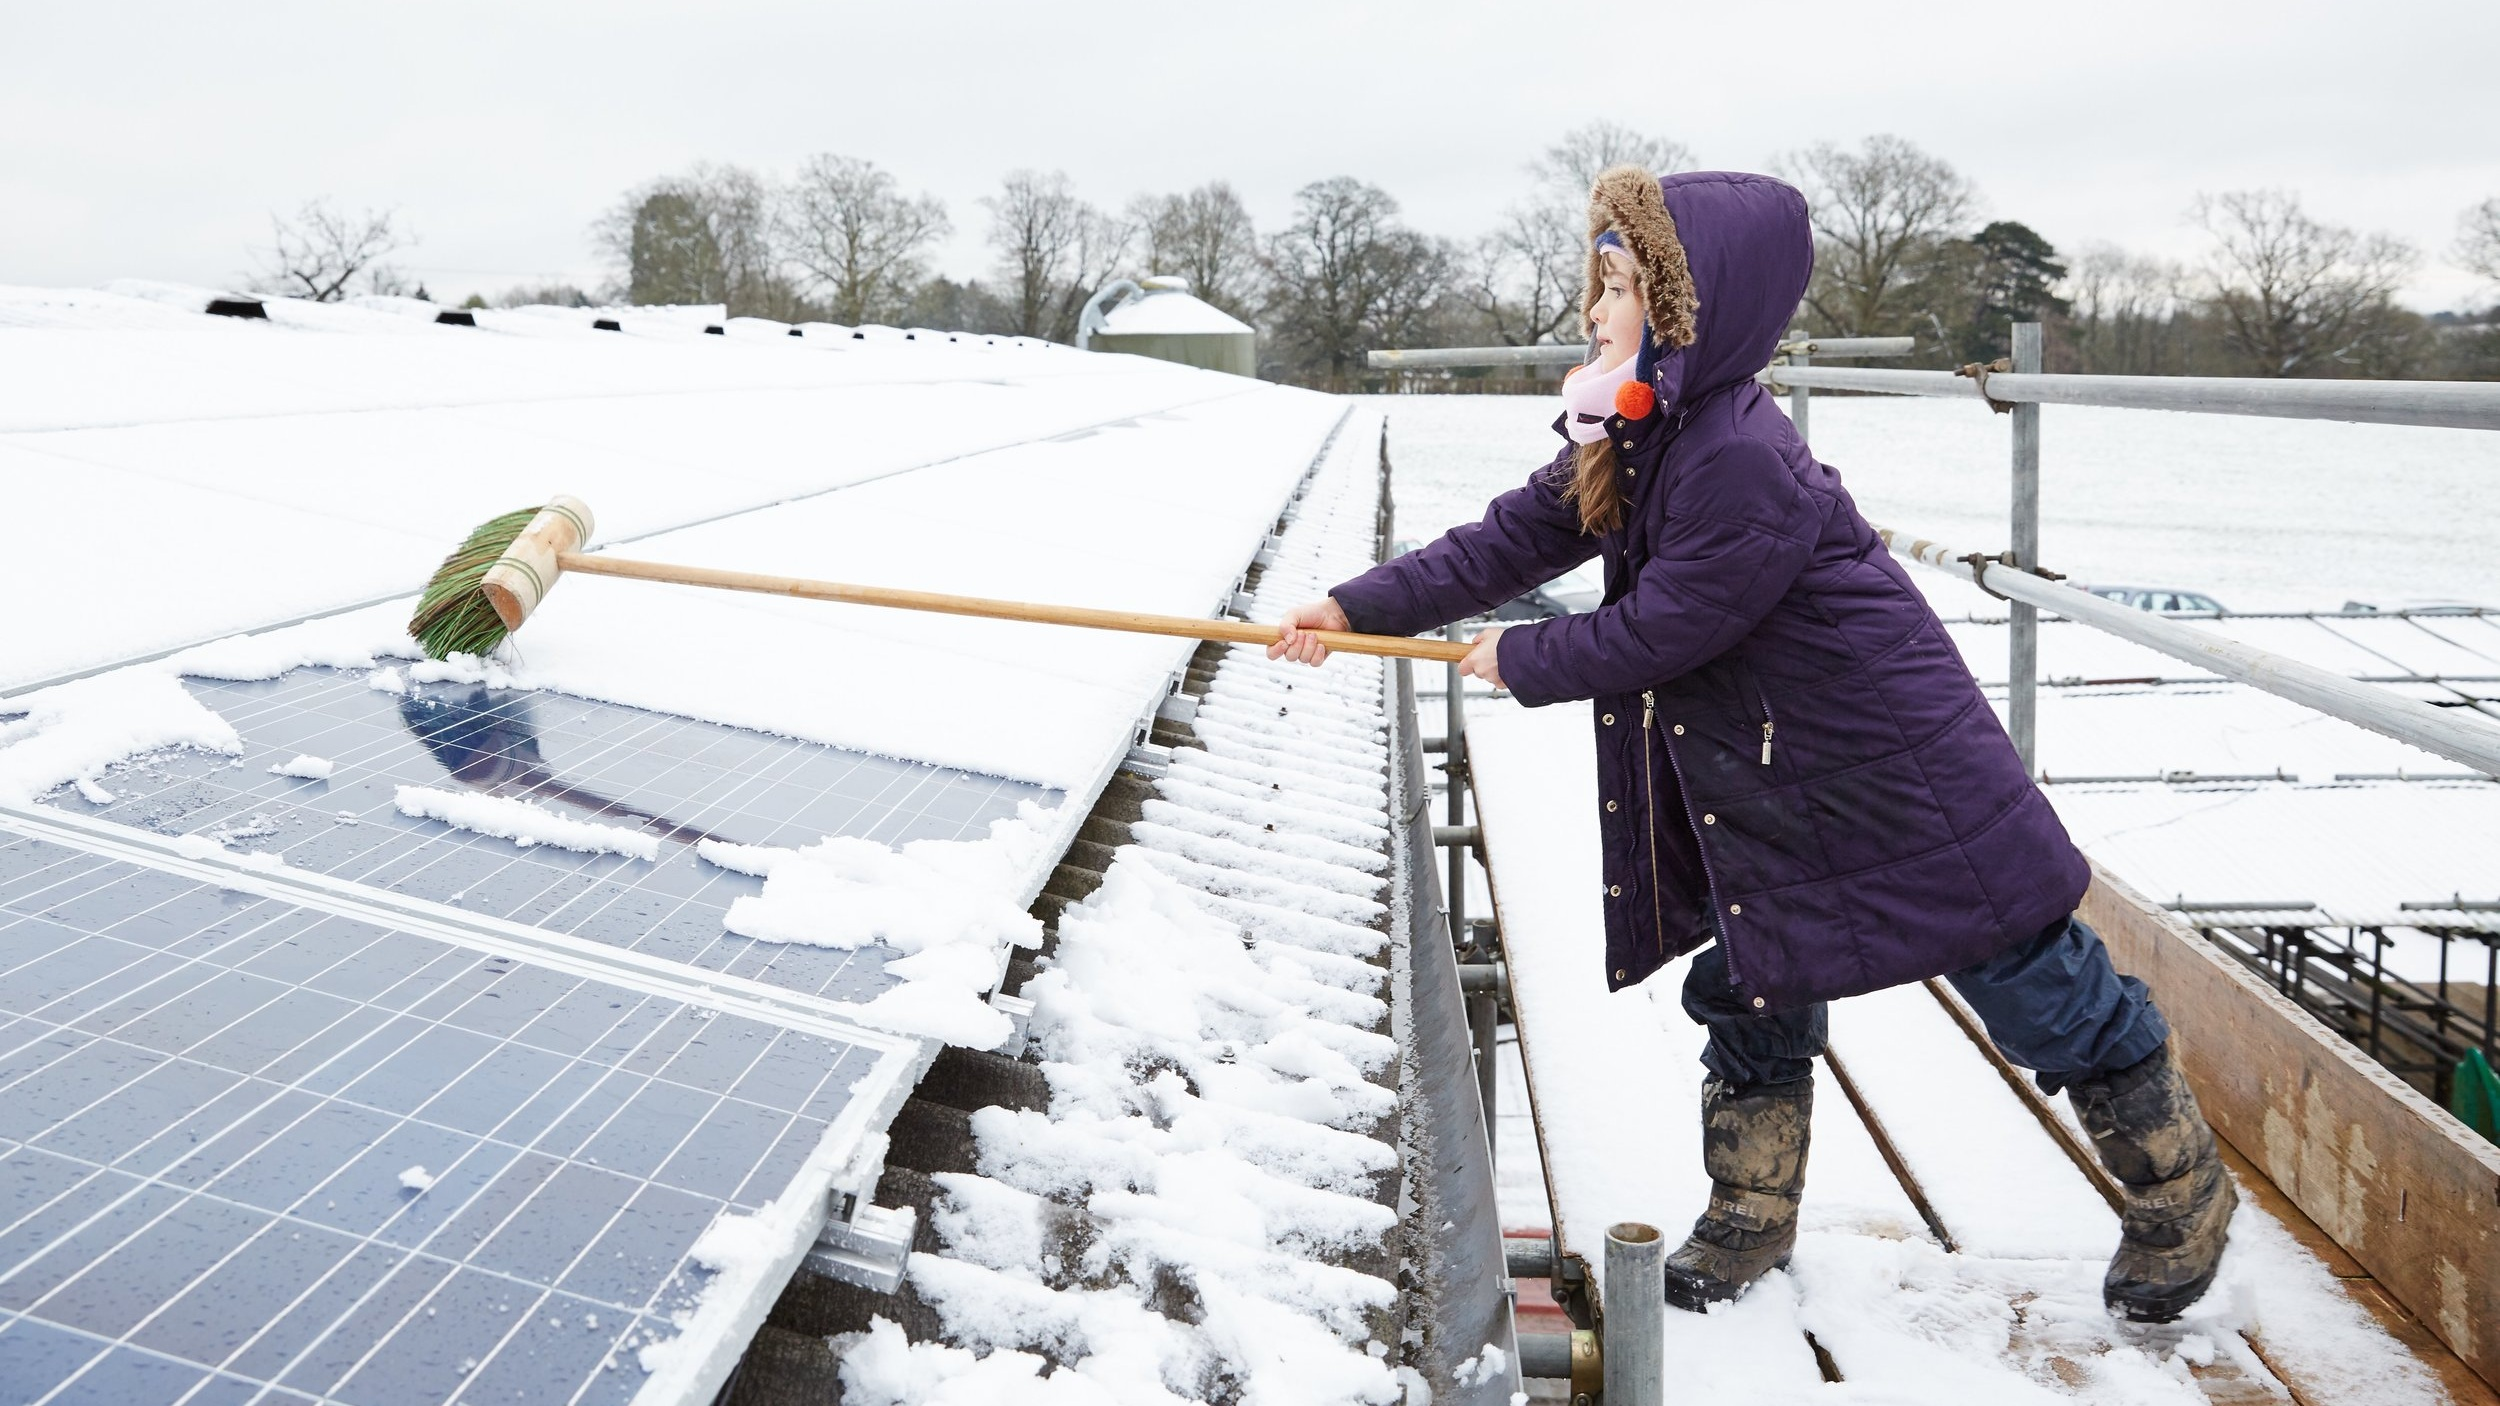 young girl in purple coat sweeps snow off solar panels.